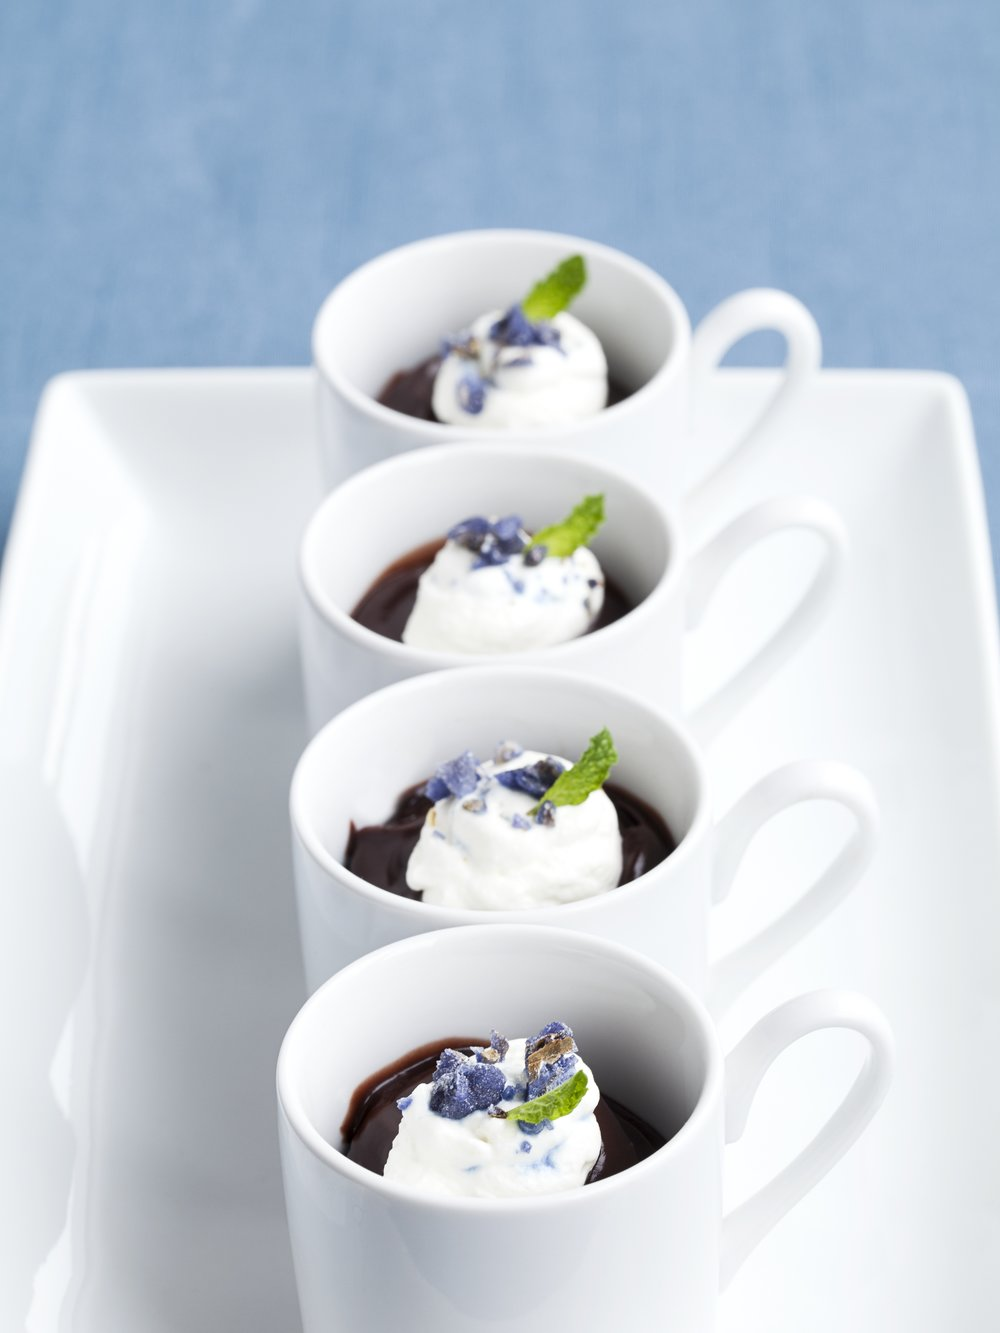 - Dark chocolate pudding with whipped crème fraiche and candied violets